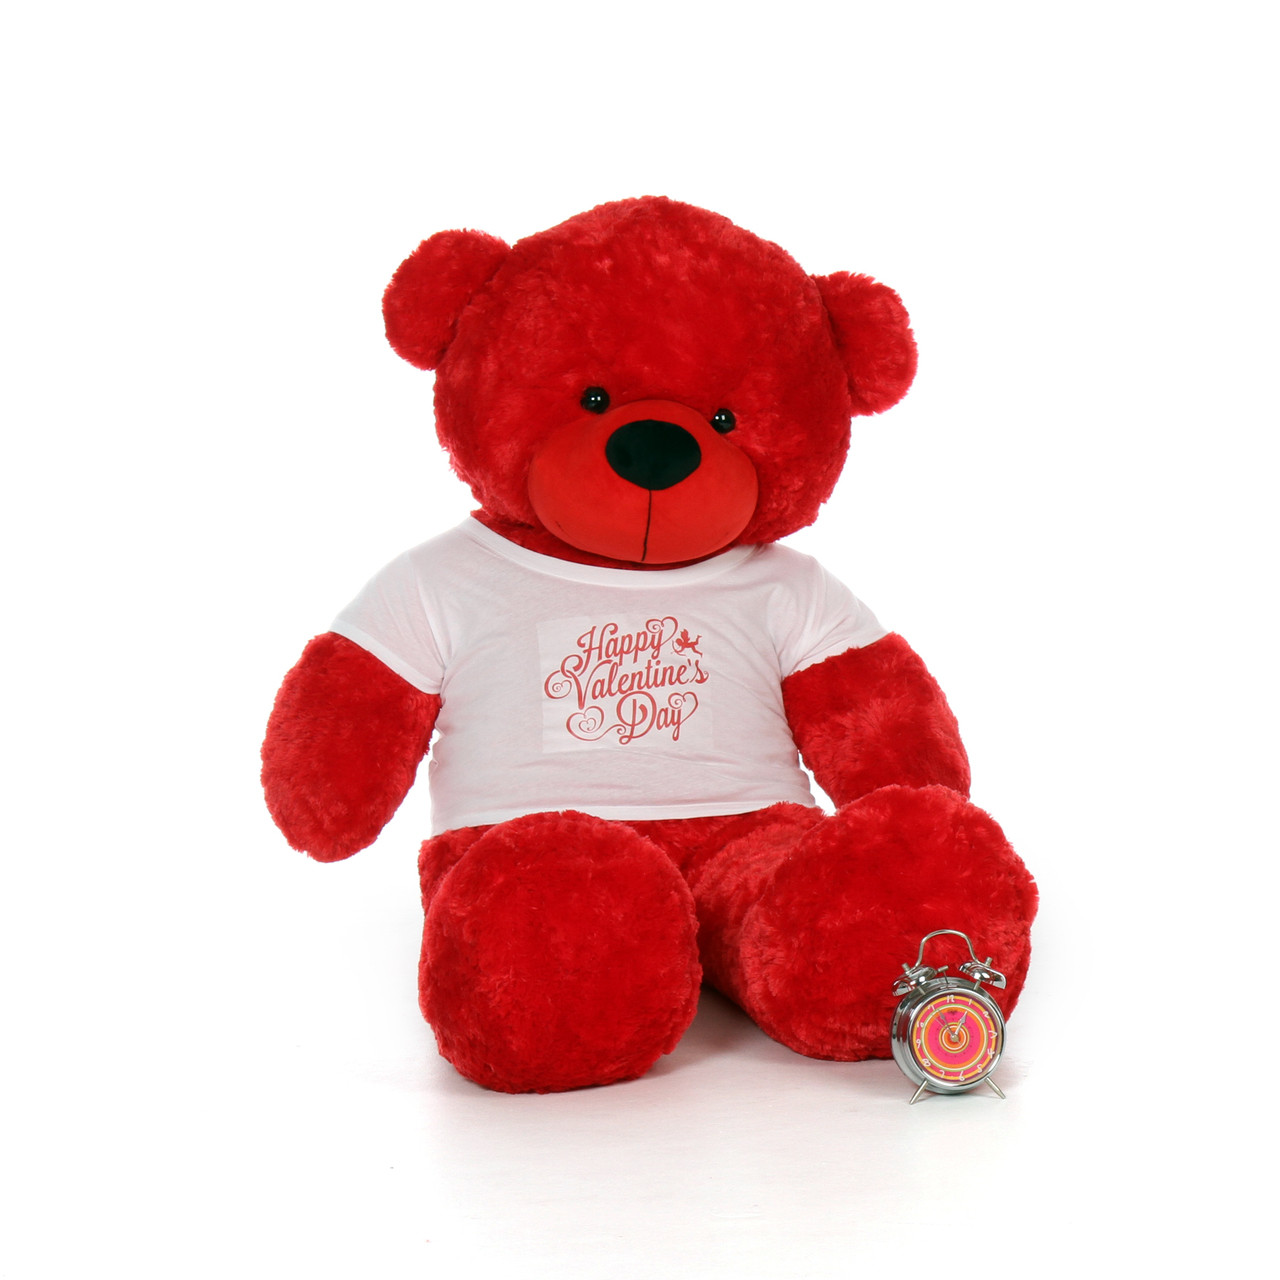 60in bitsy cuddles giant red teddy bear in happy valentines day shirt